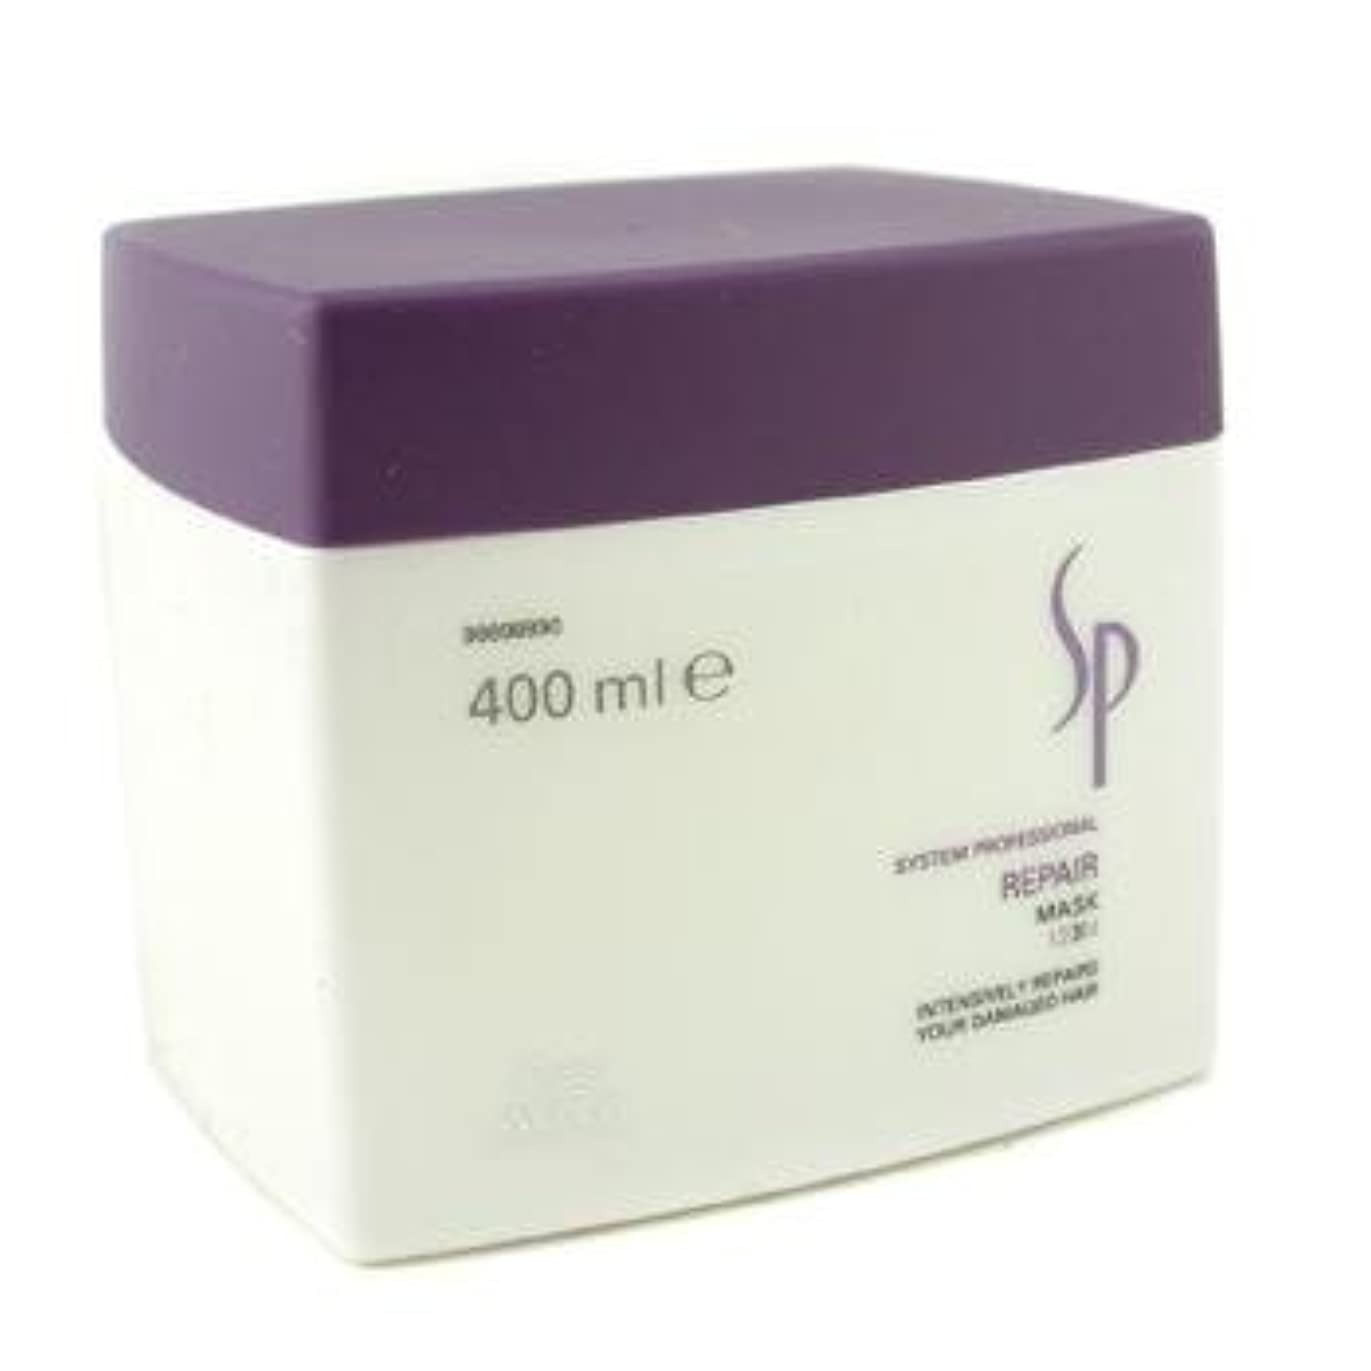 障害者メトロポリタン削るWella SP Repair Mask (For Damaged Hair) - 400ml/13.33oz by Wella [並行輸入品]